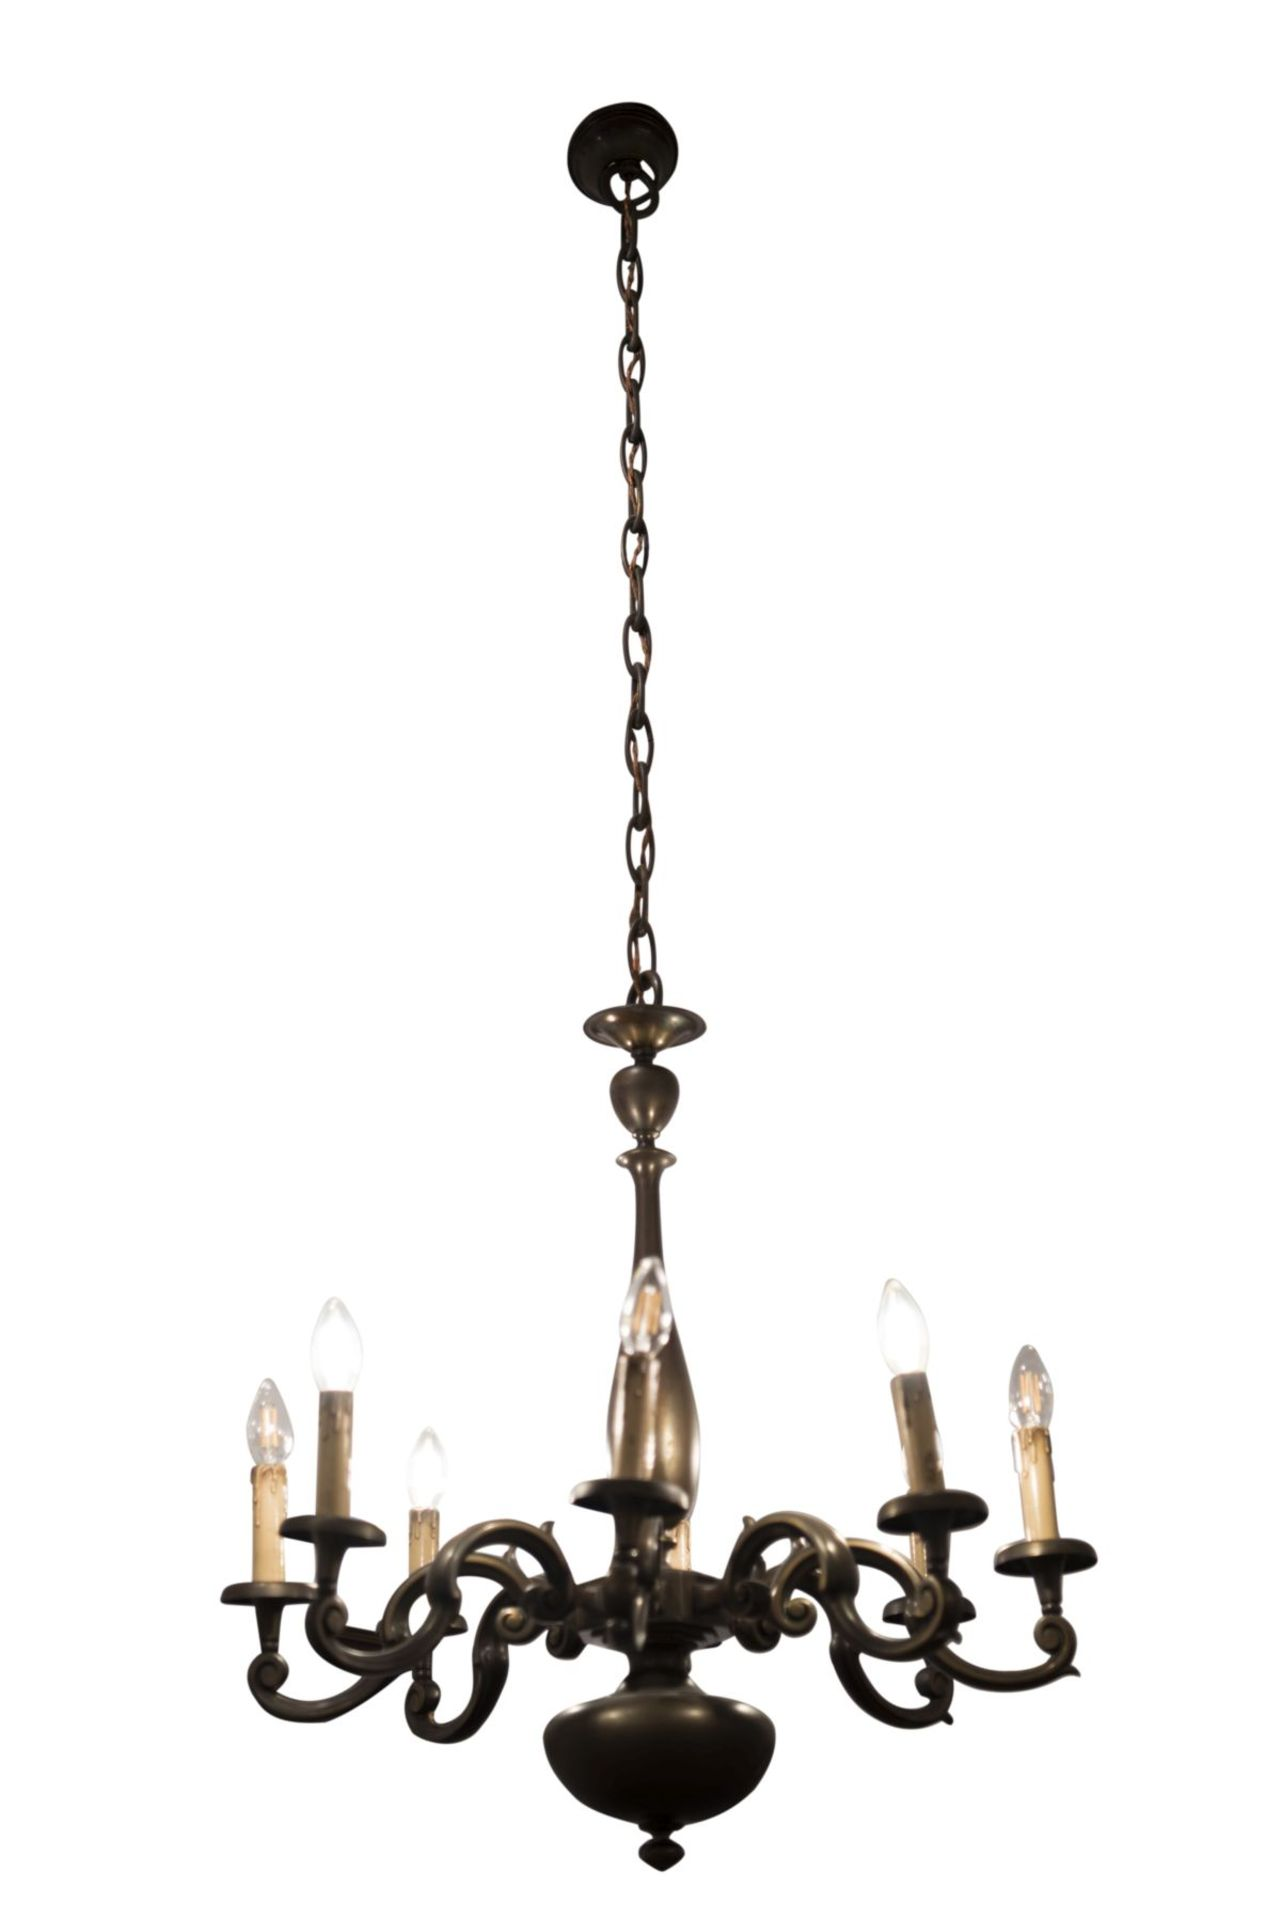 Salon chandelier and two wall appliques